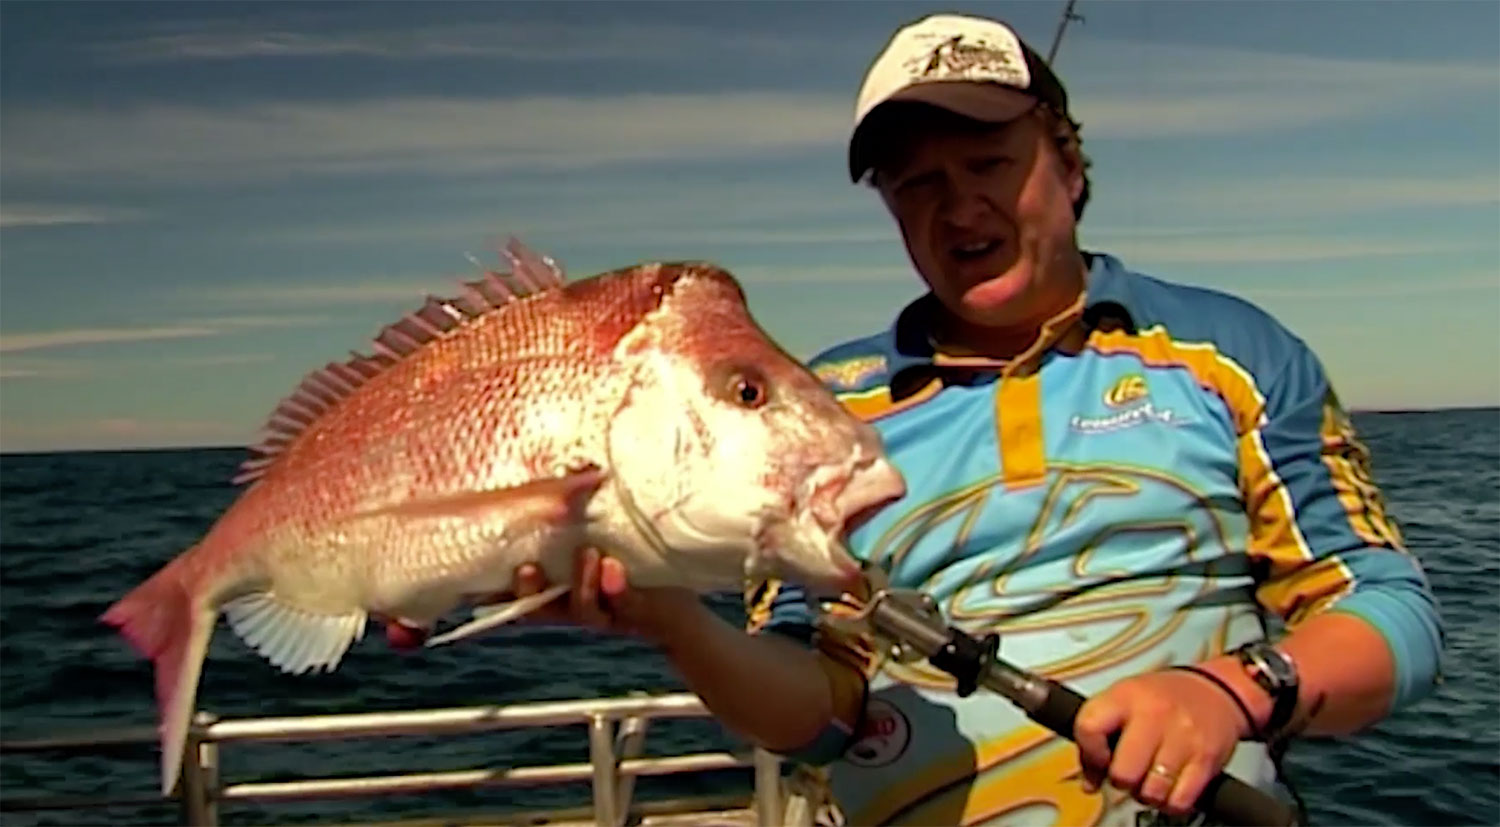 Steve Correia with Pink Snapper